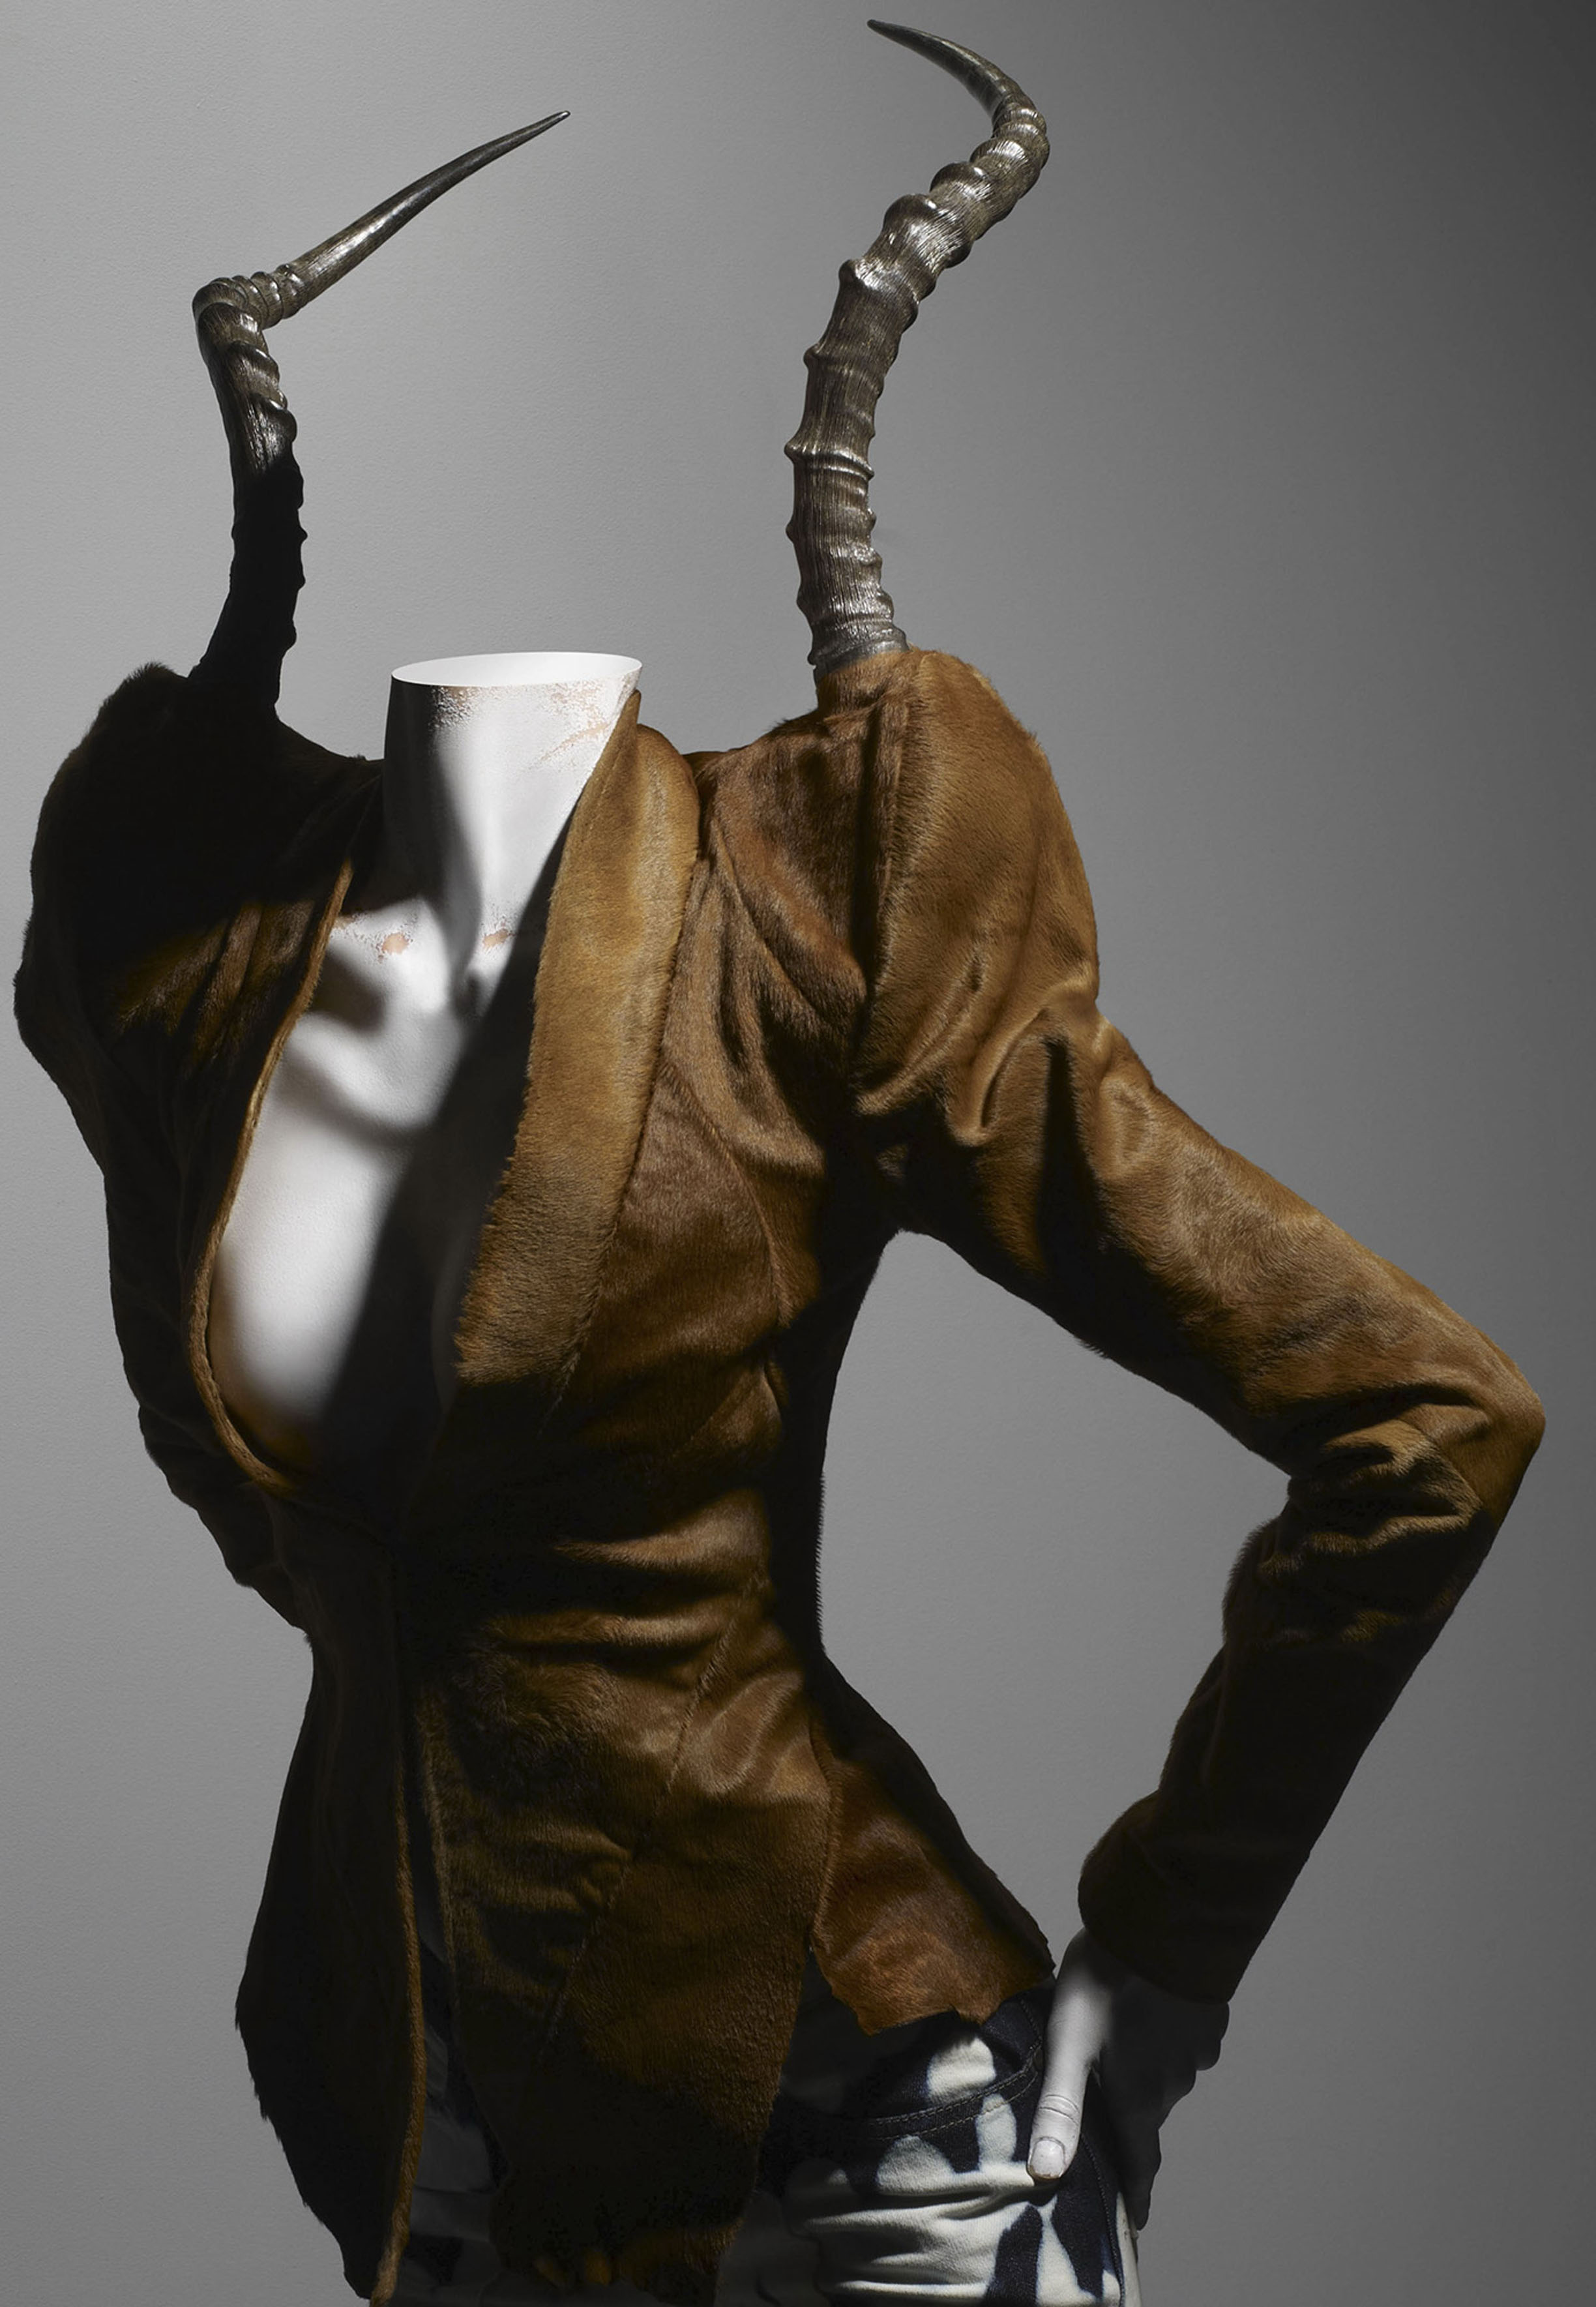 Sybarite-Architects-Alexander-McQueen-Savage-Beauty-V-and-A-Horns-A-Romantic-Primitivism.jpg